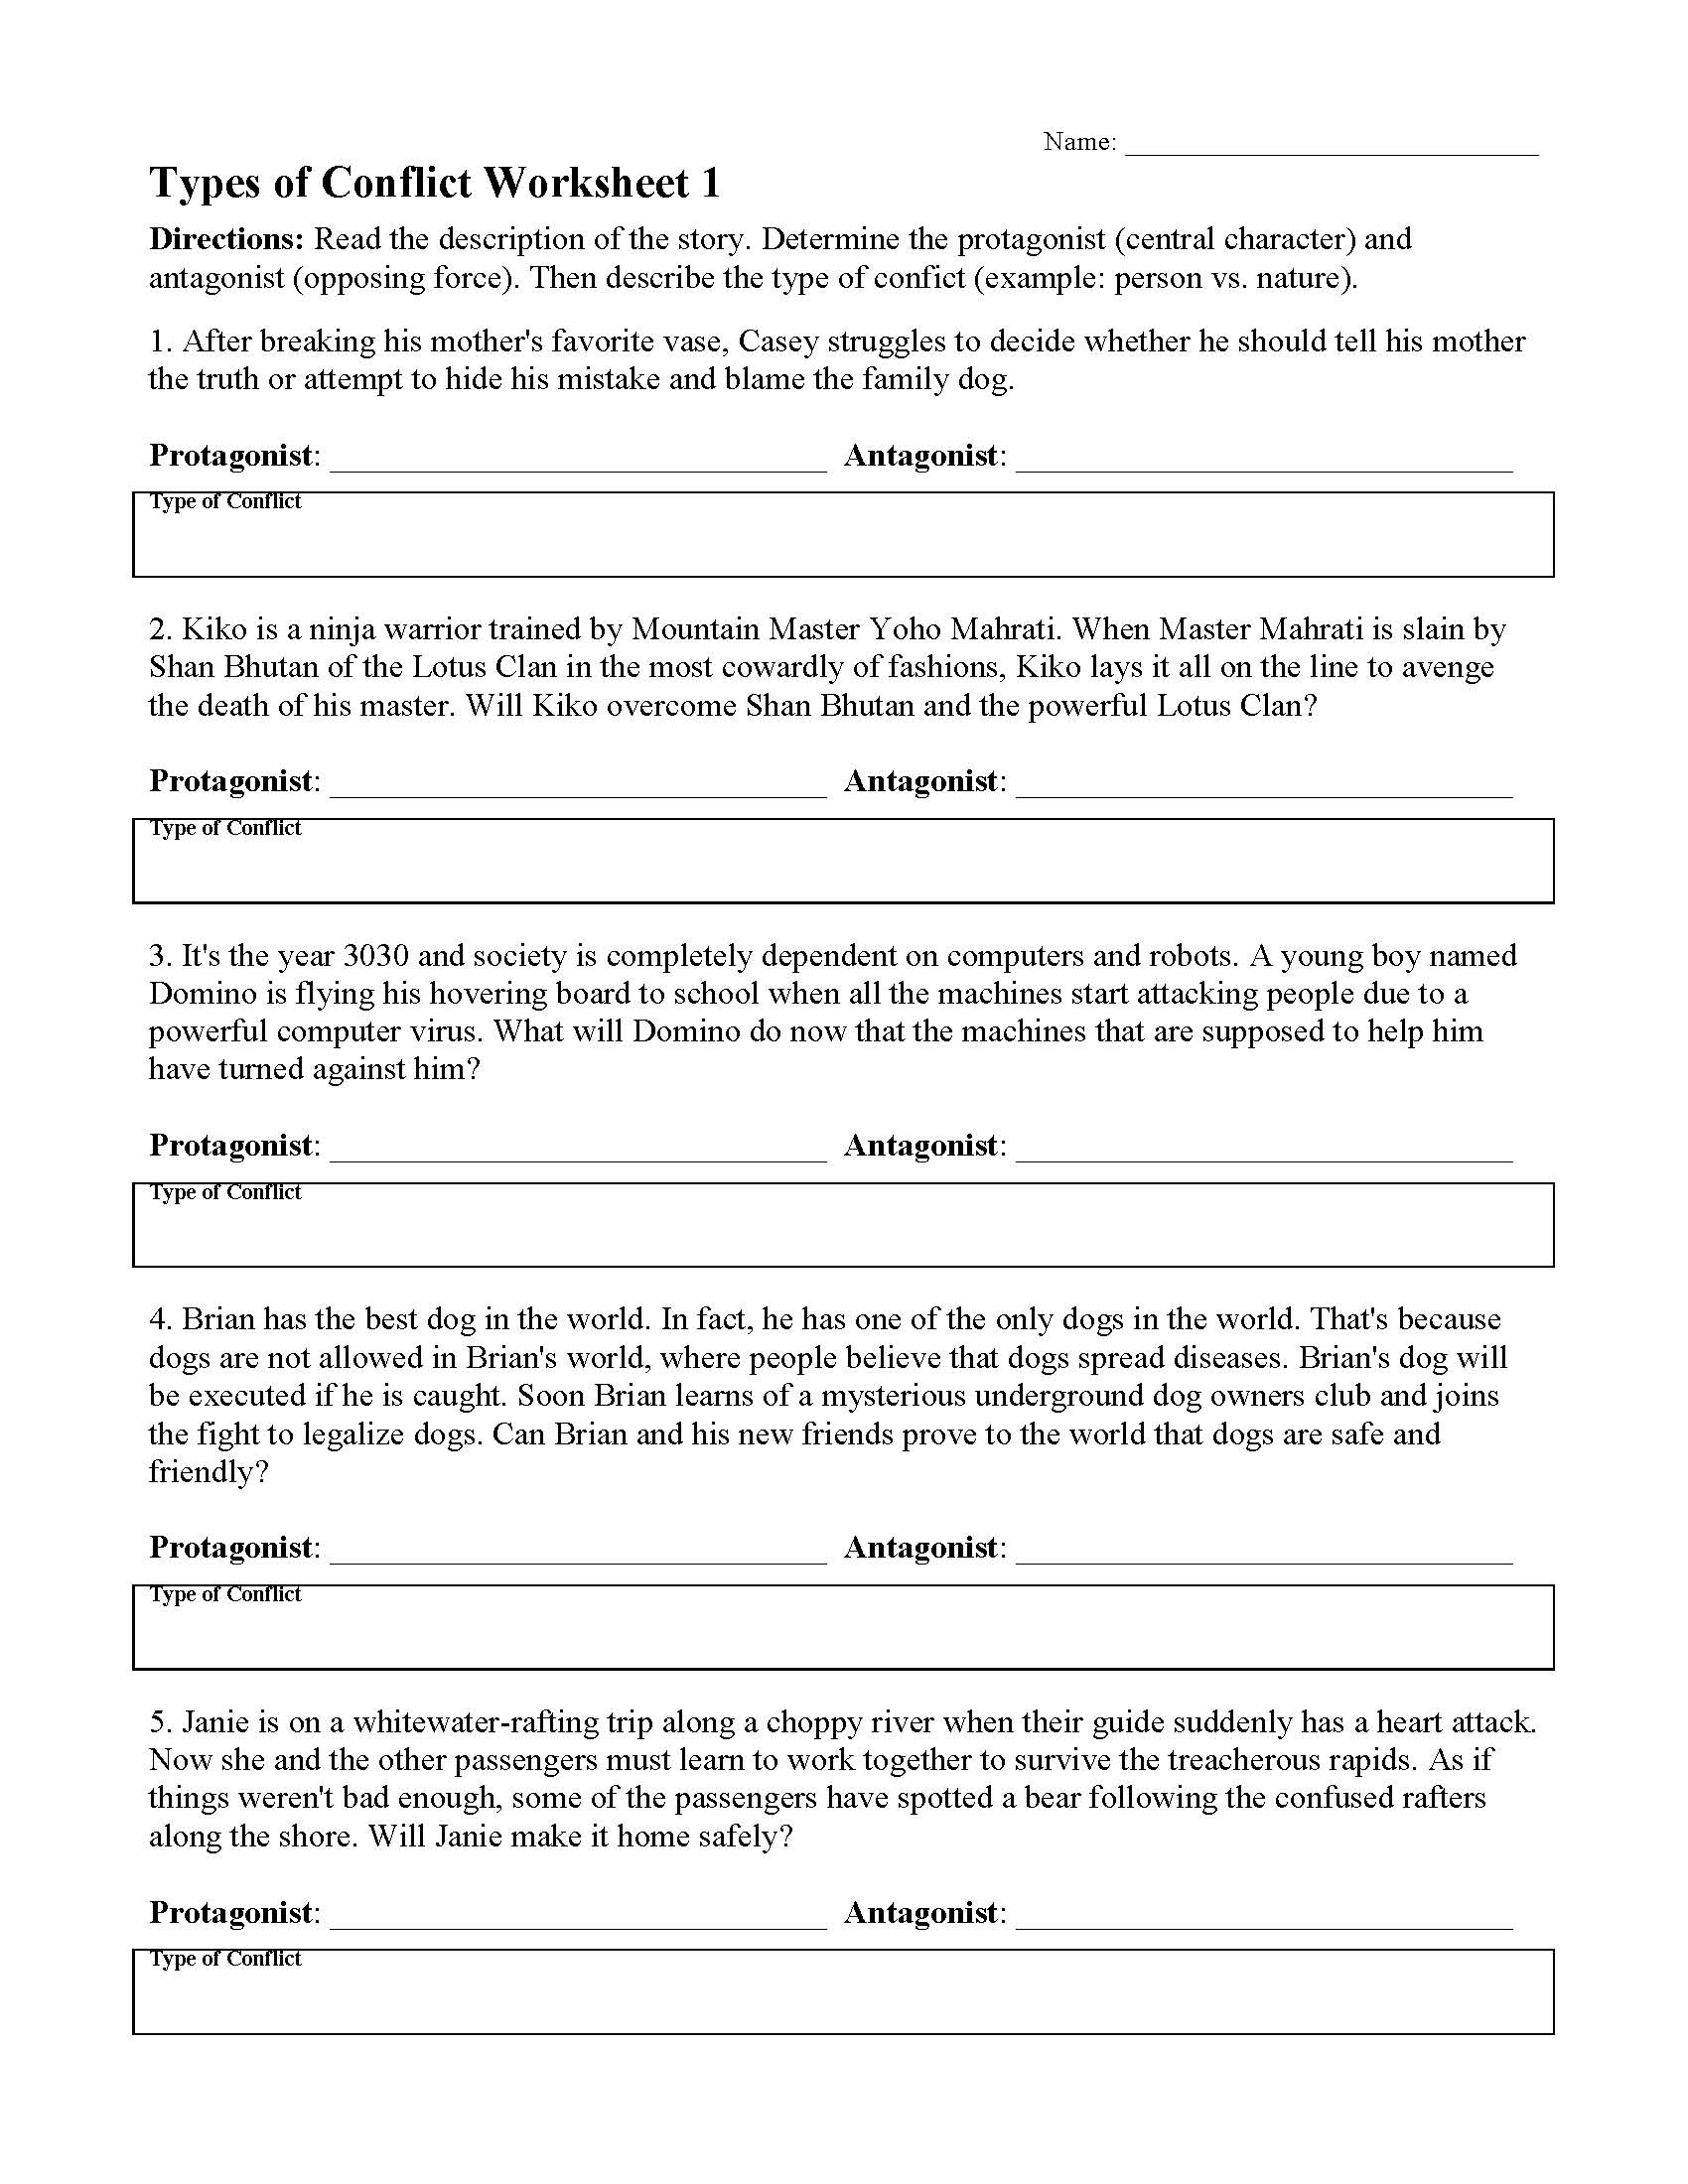 Elements Of Poetry Worksheet For Middle School